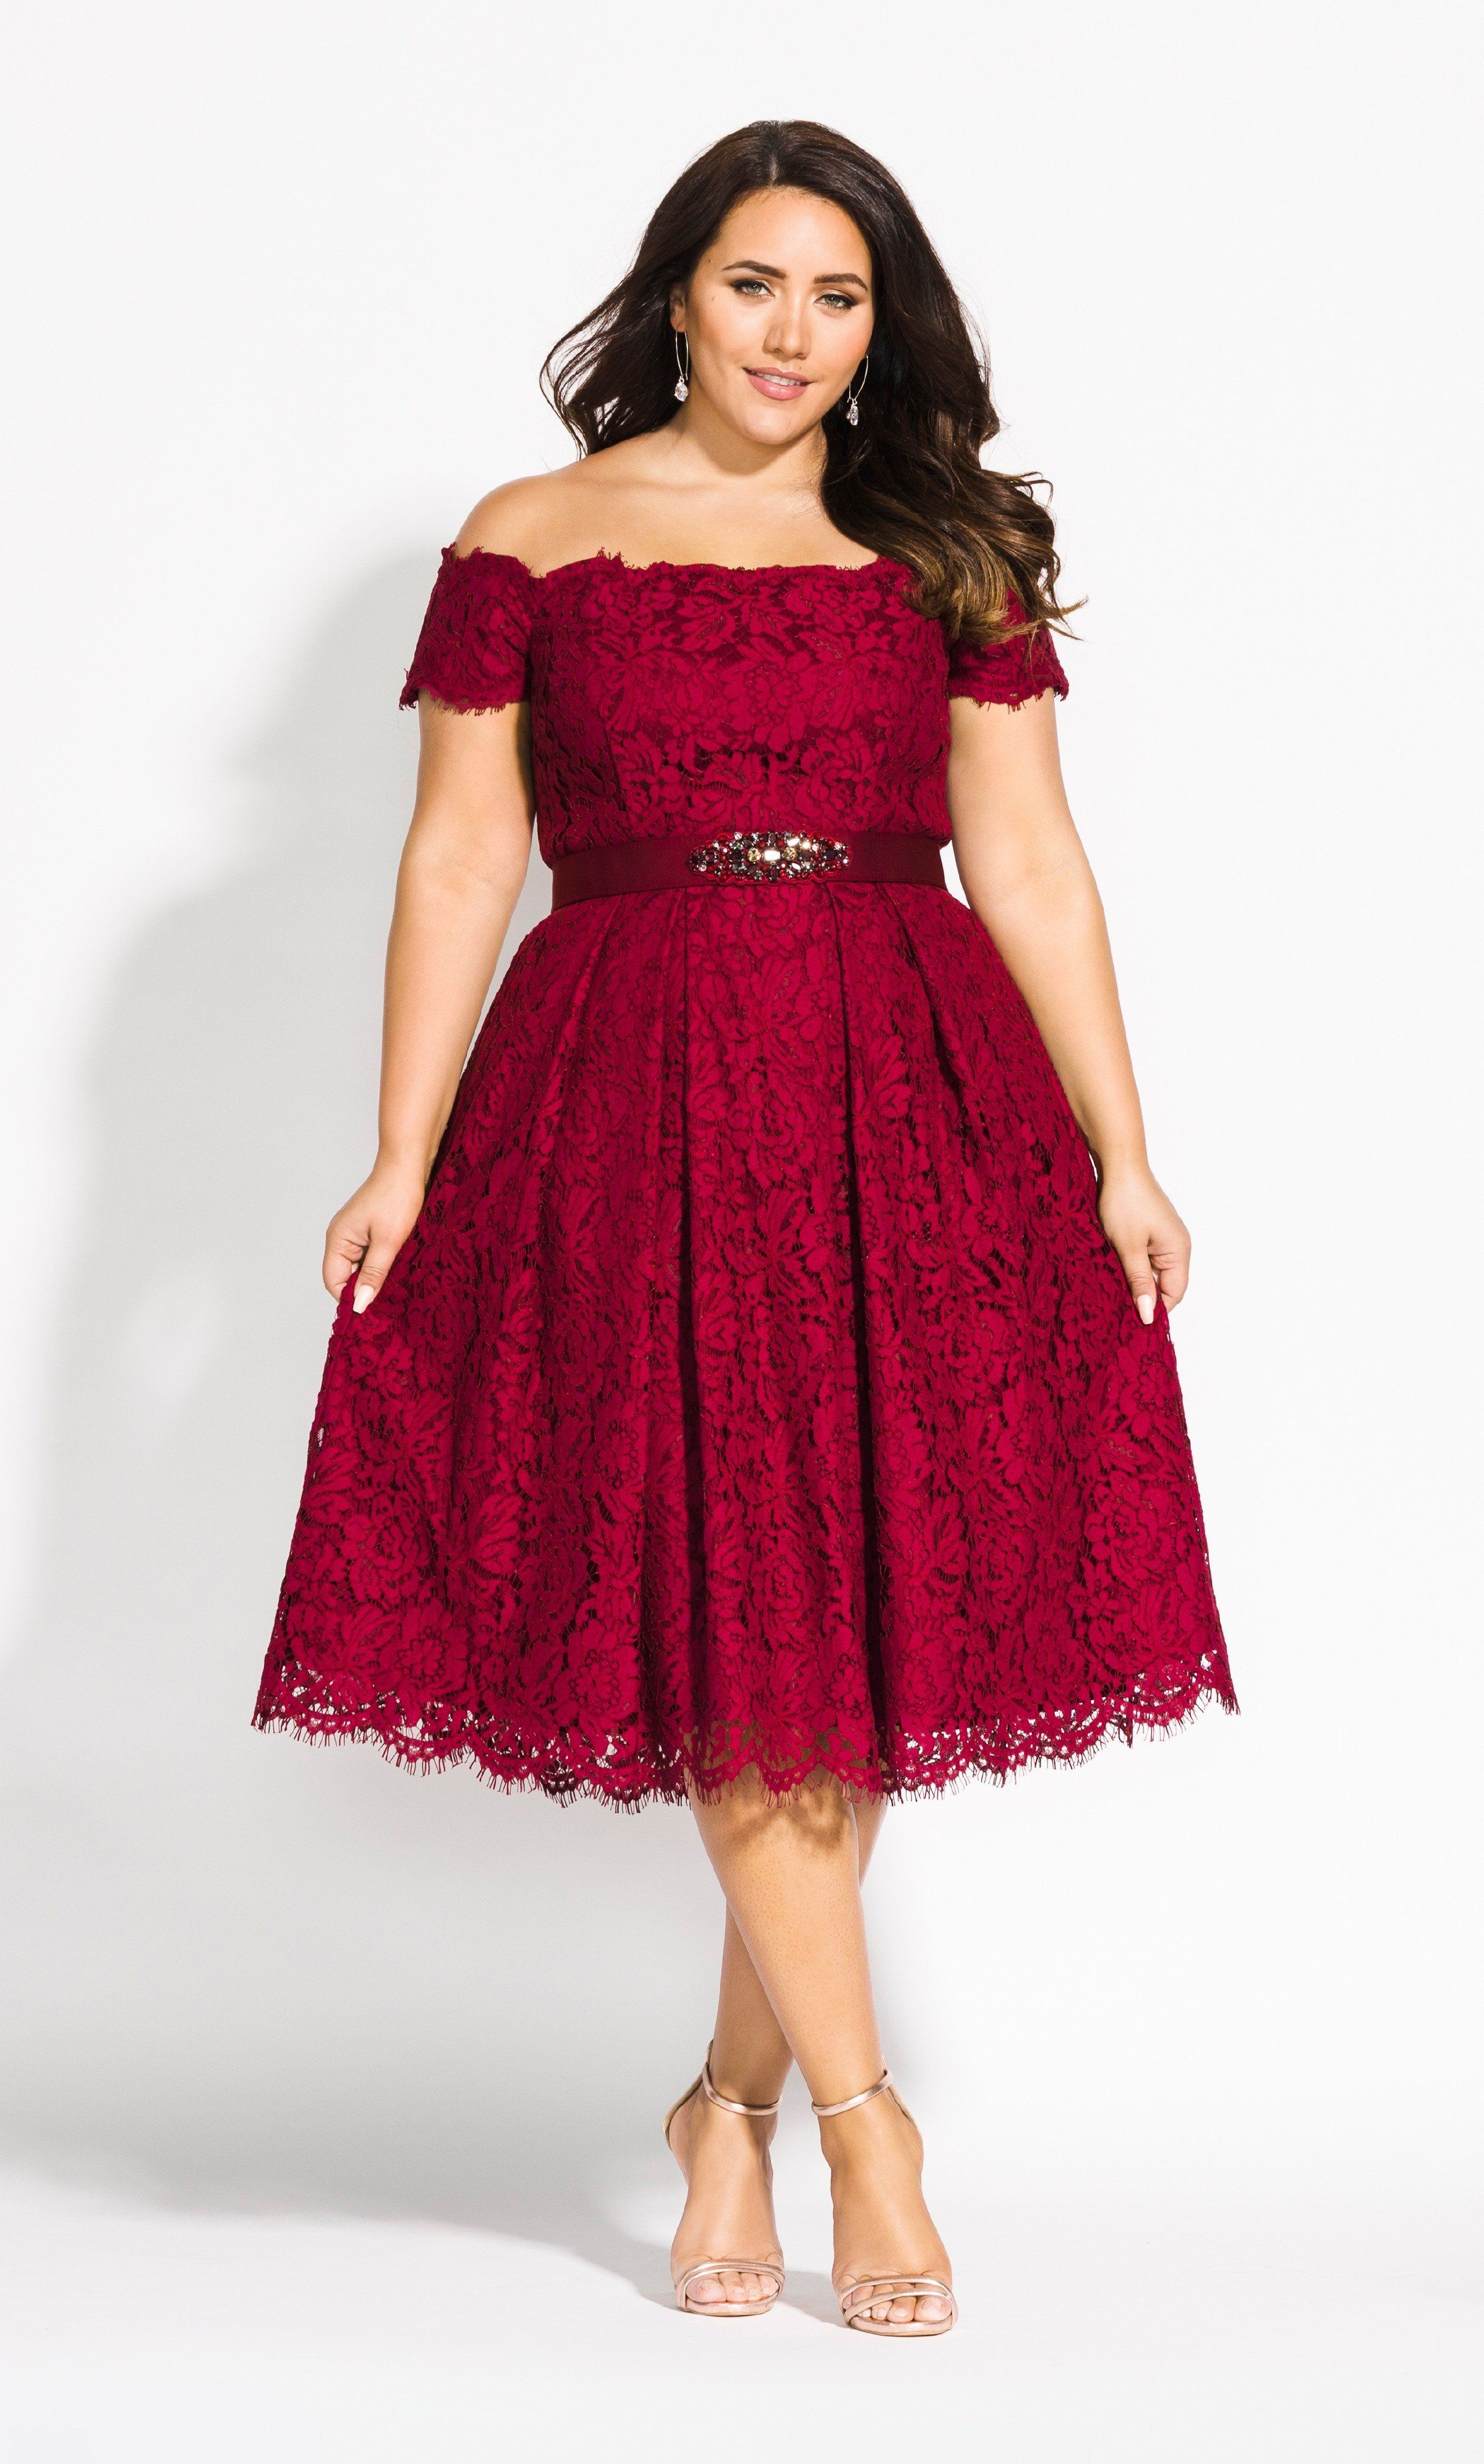 Lace Dreams Dress - ruby in 2019 | Plus size fashion for ...